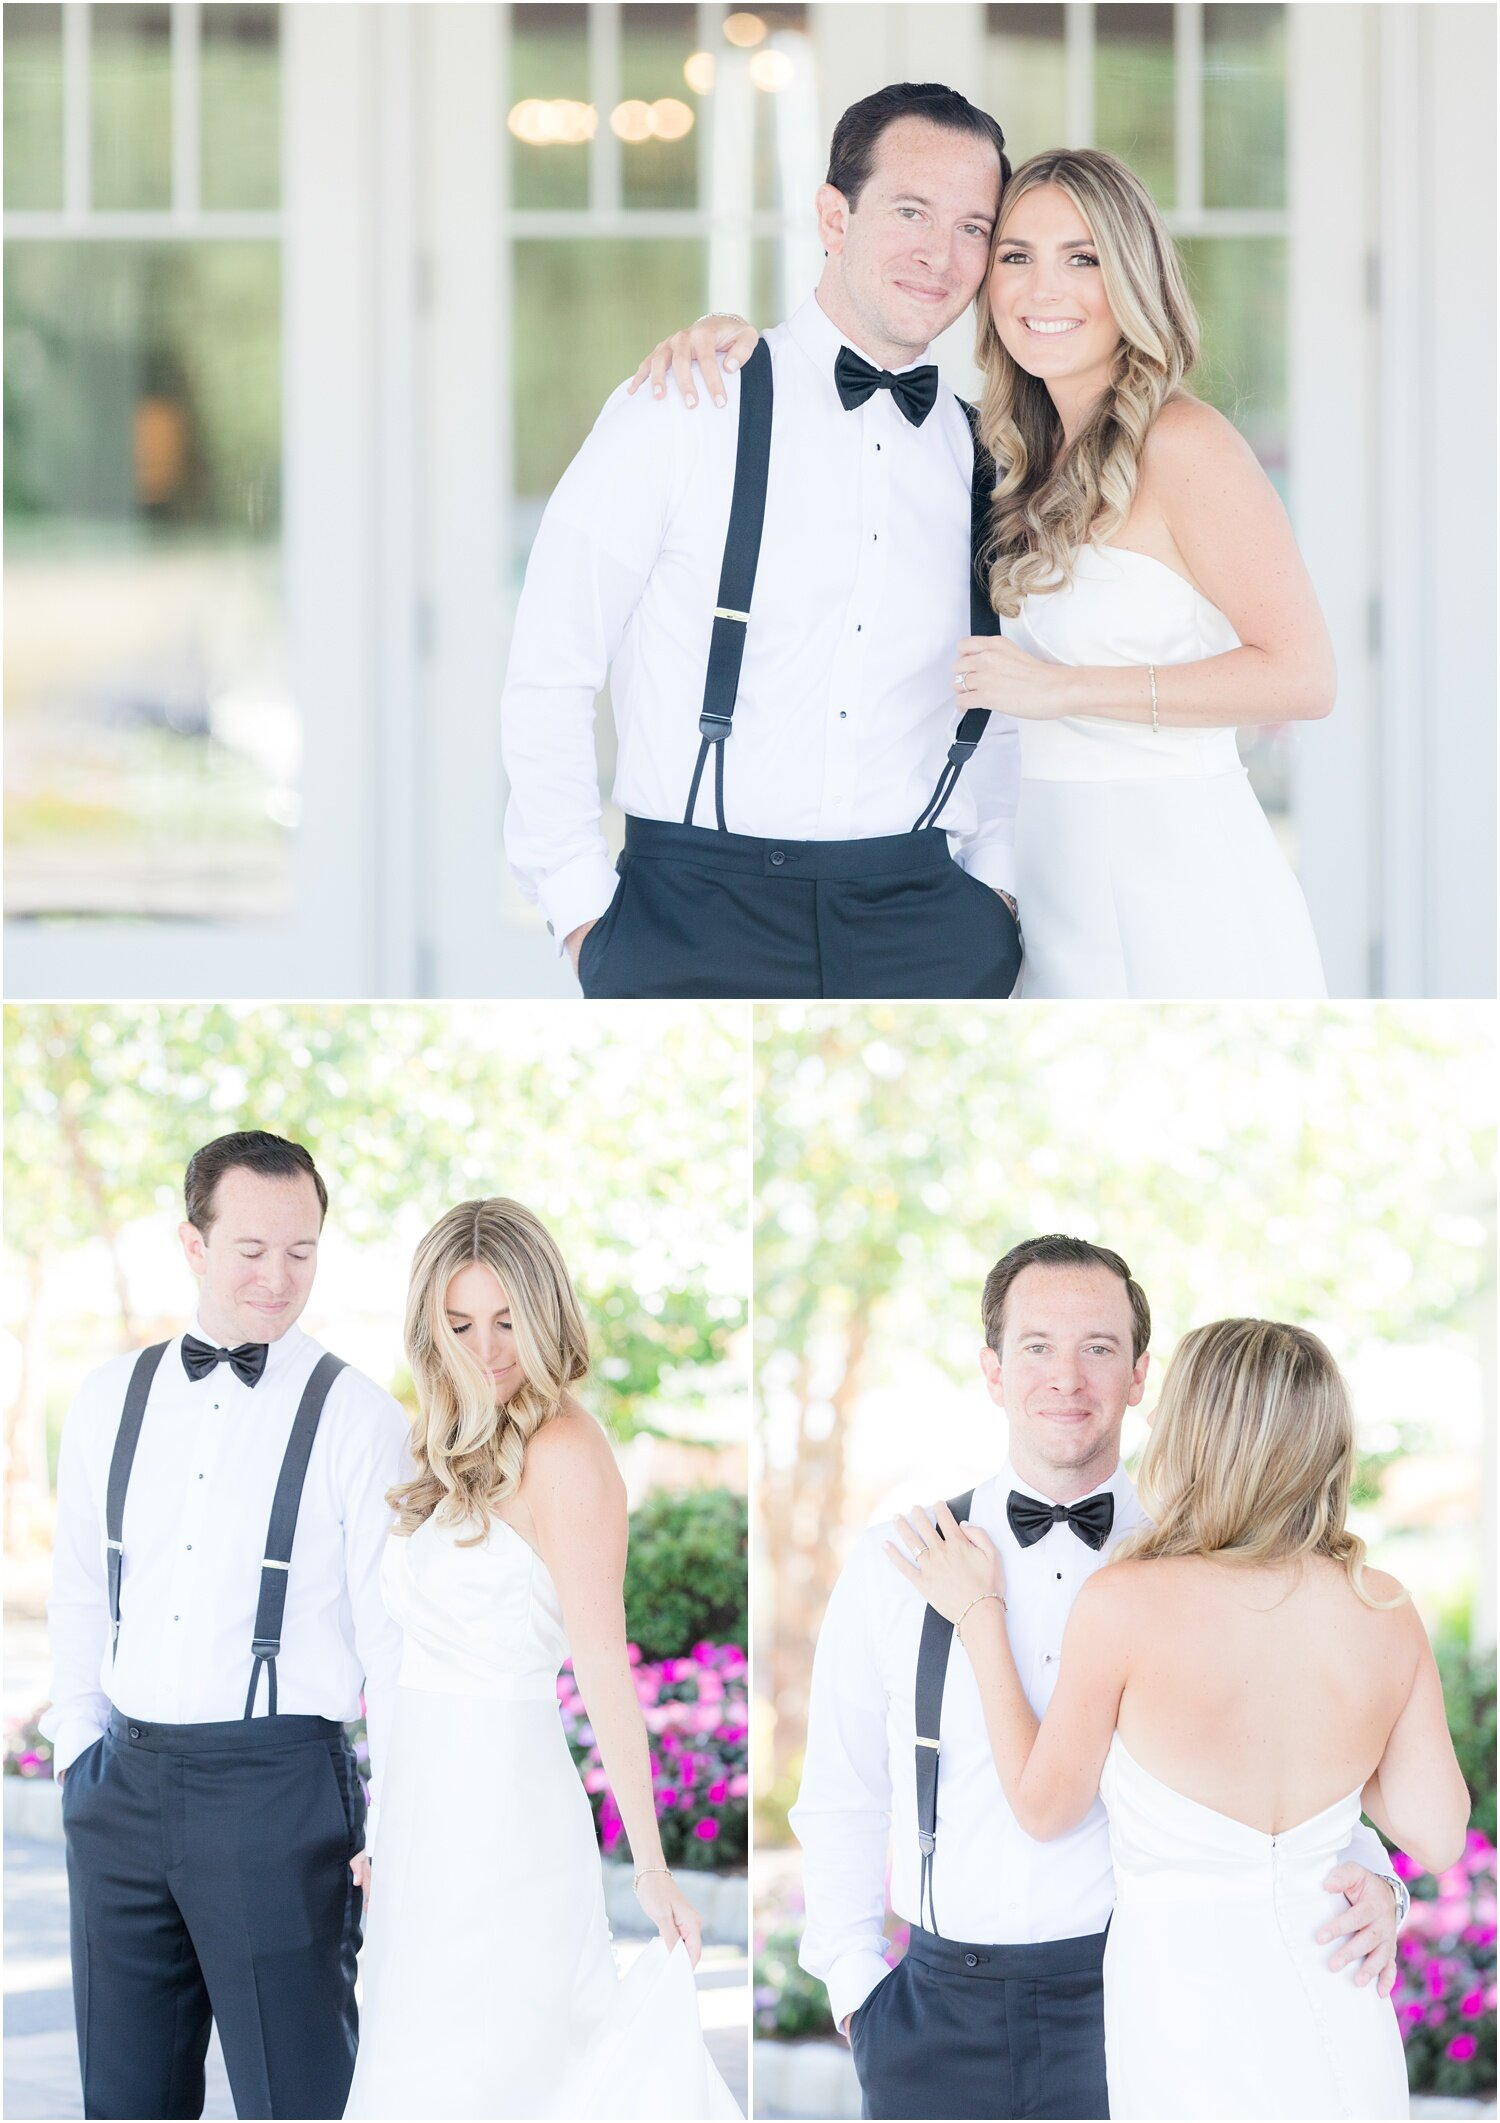 Bride and groom portraits at Spring Lake Golf Club.